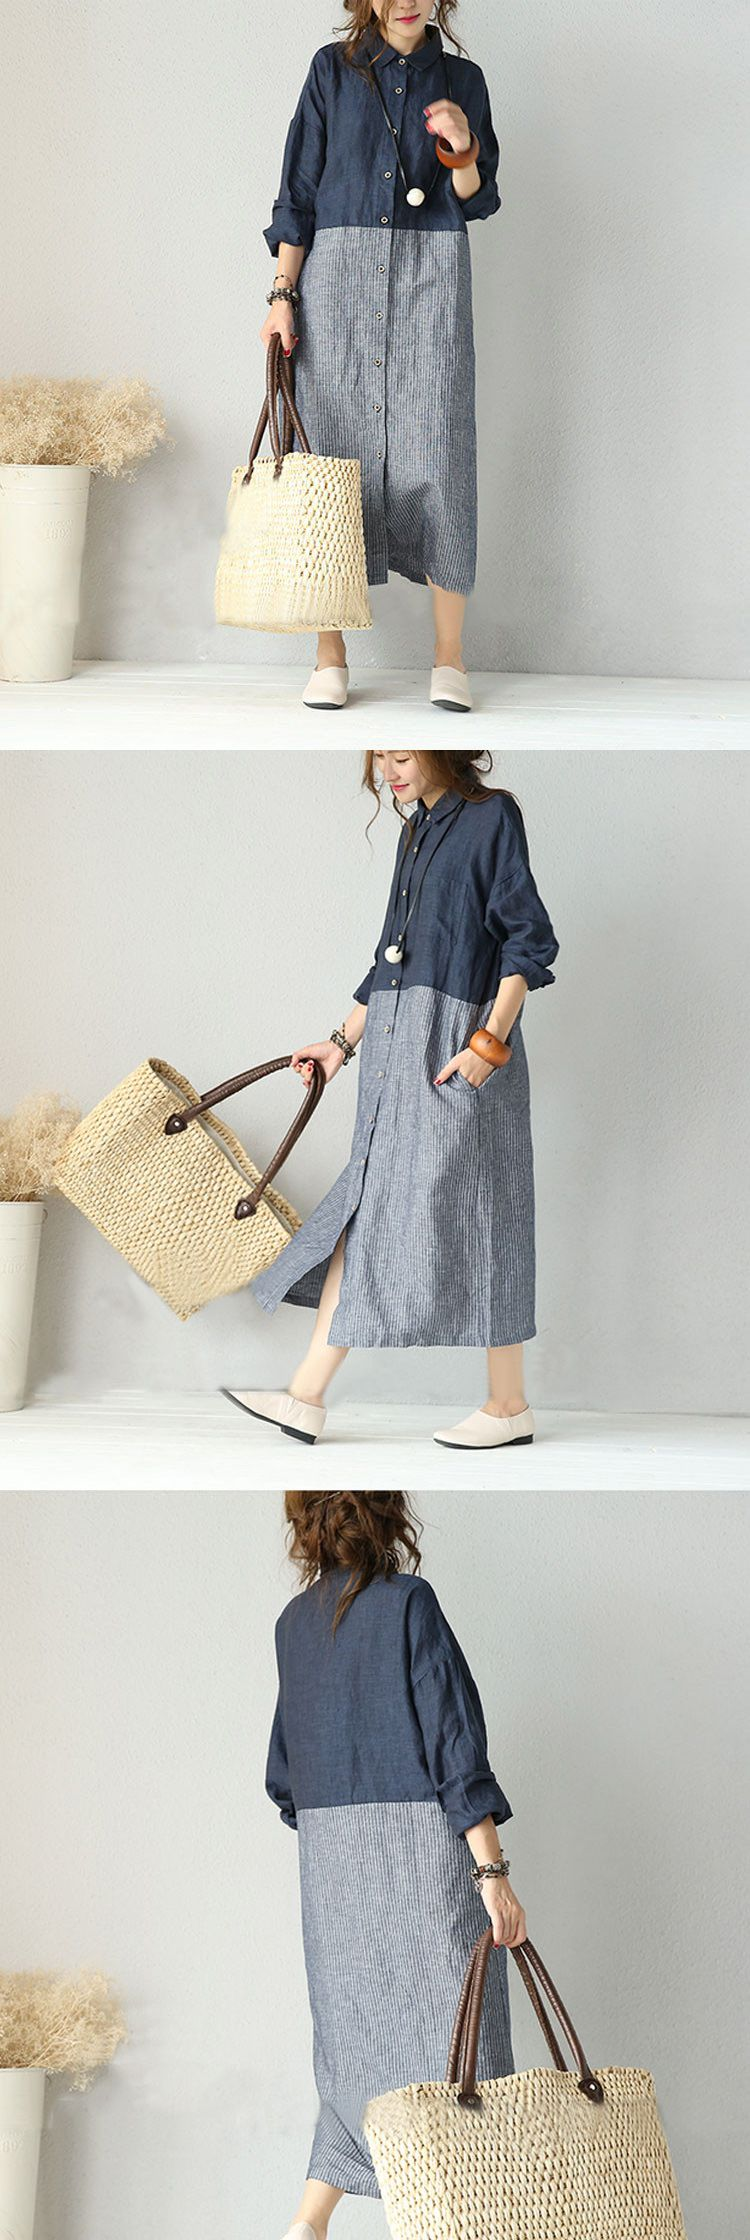 307cf3d7e392 1st   women rtro style stripe stitching mixed color cardiagn linen short  dress with pockets. 2nd  a simple Cream-colored bag.3rd  Bohemian shoes.